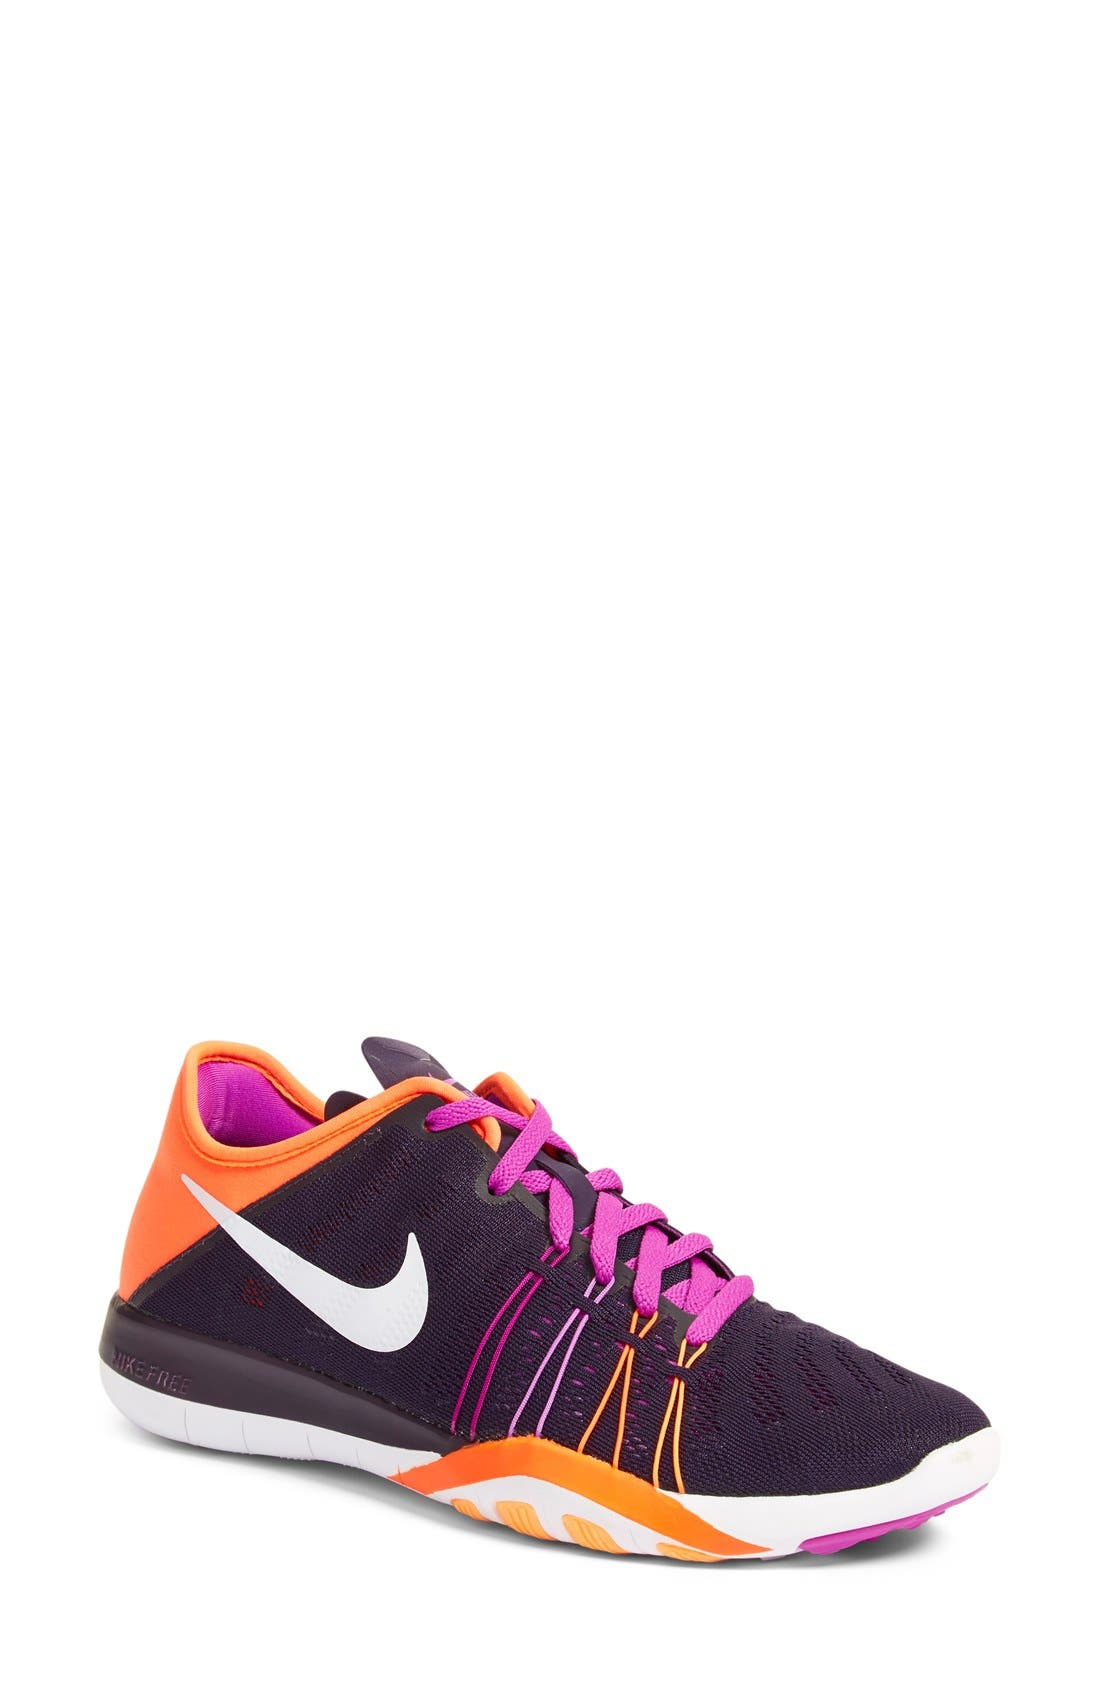 Alternate Image 1 Selected - Nike Free TR Fit 6 Training Shoe (Women)